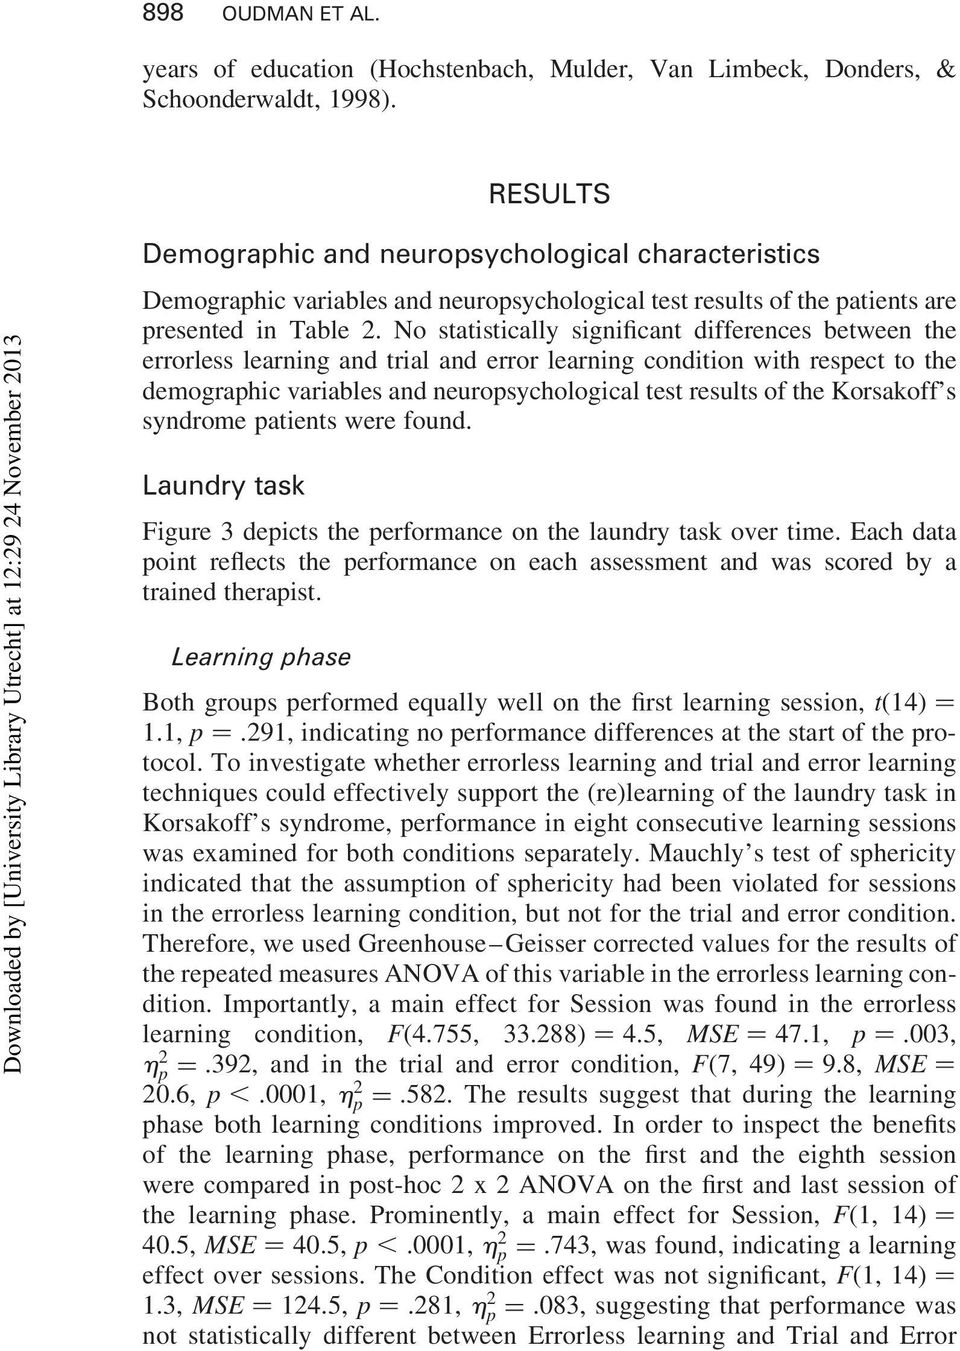 No statistically significant differences between the errorless learning and trial and error learning condition with respect to the demographic variables and neuropsychological test results of the